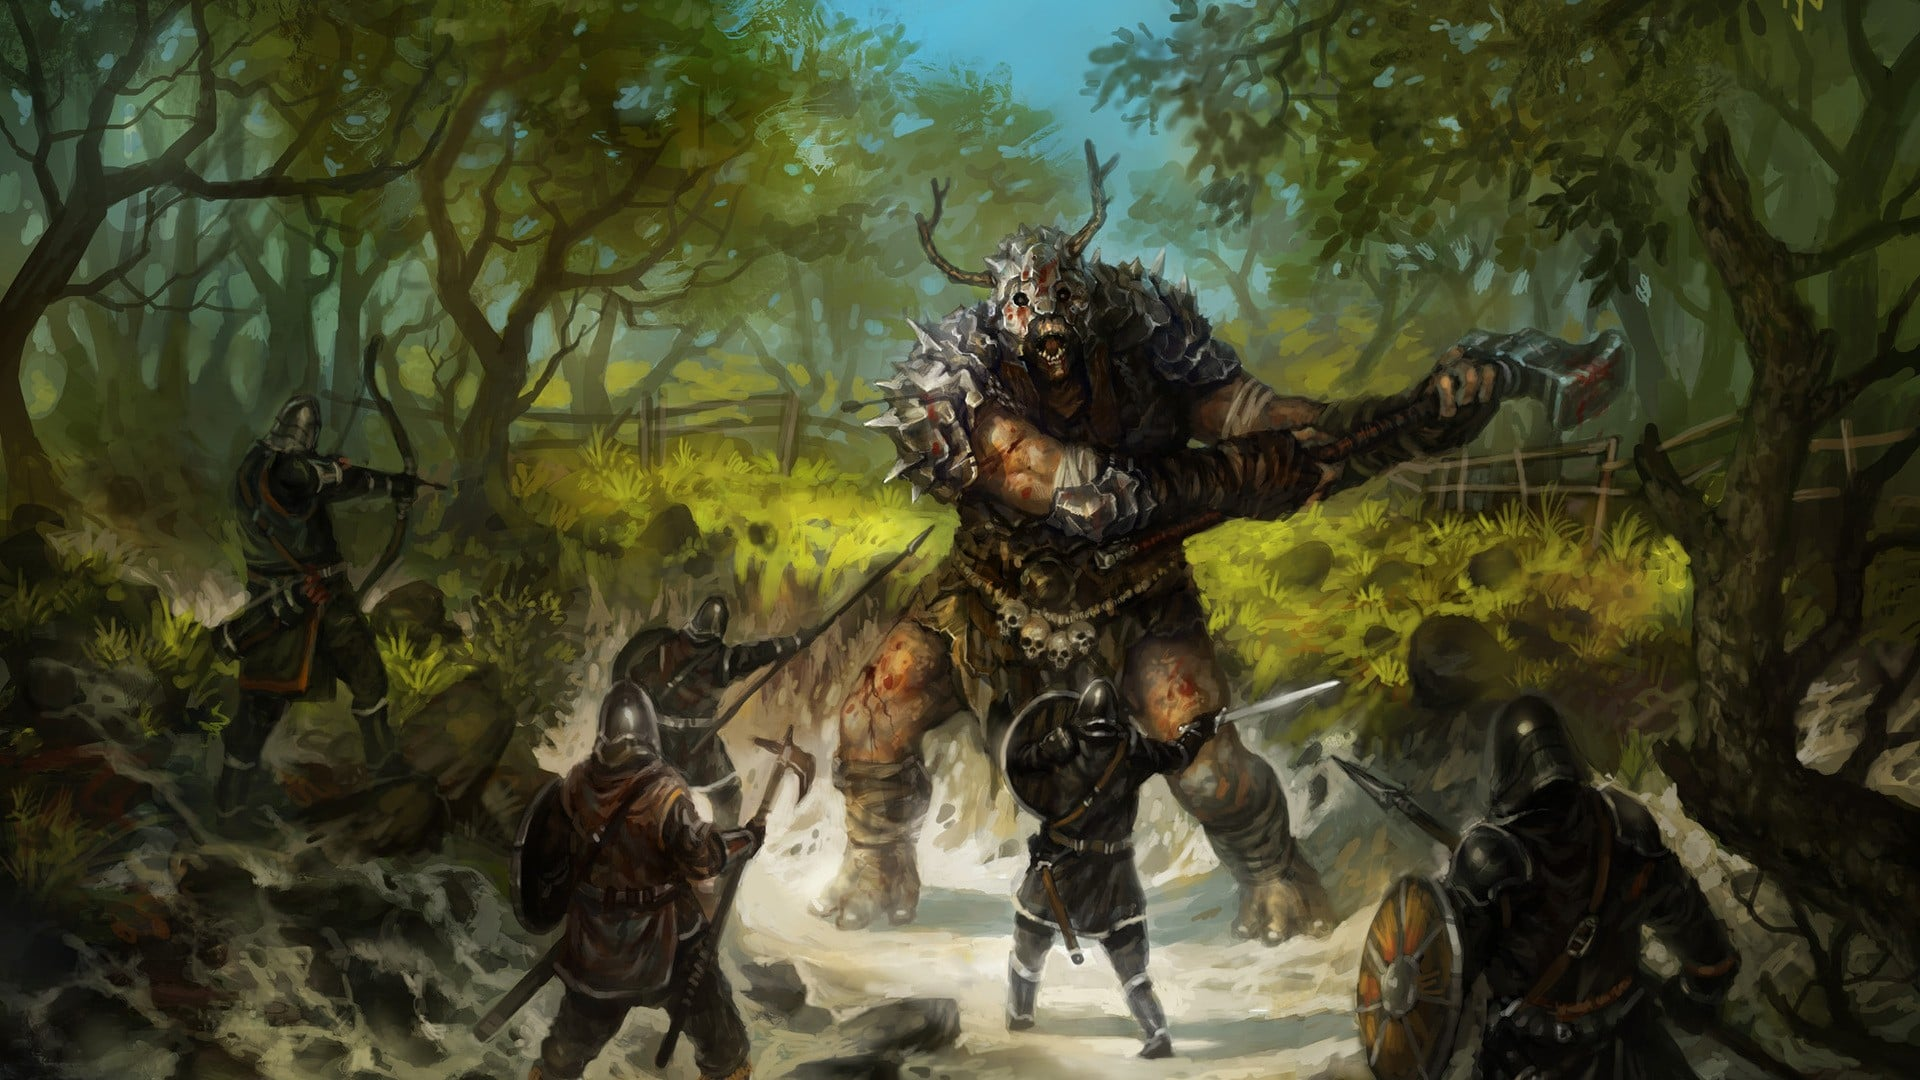 art-wallpaper-on-the-game-lord-of-the-ring-lord-of-the-rings.jpg